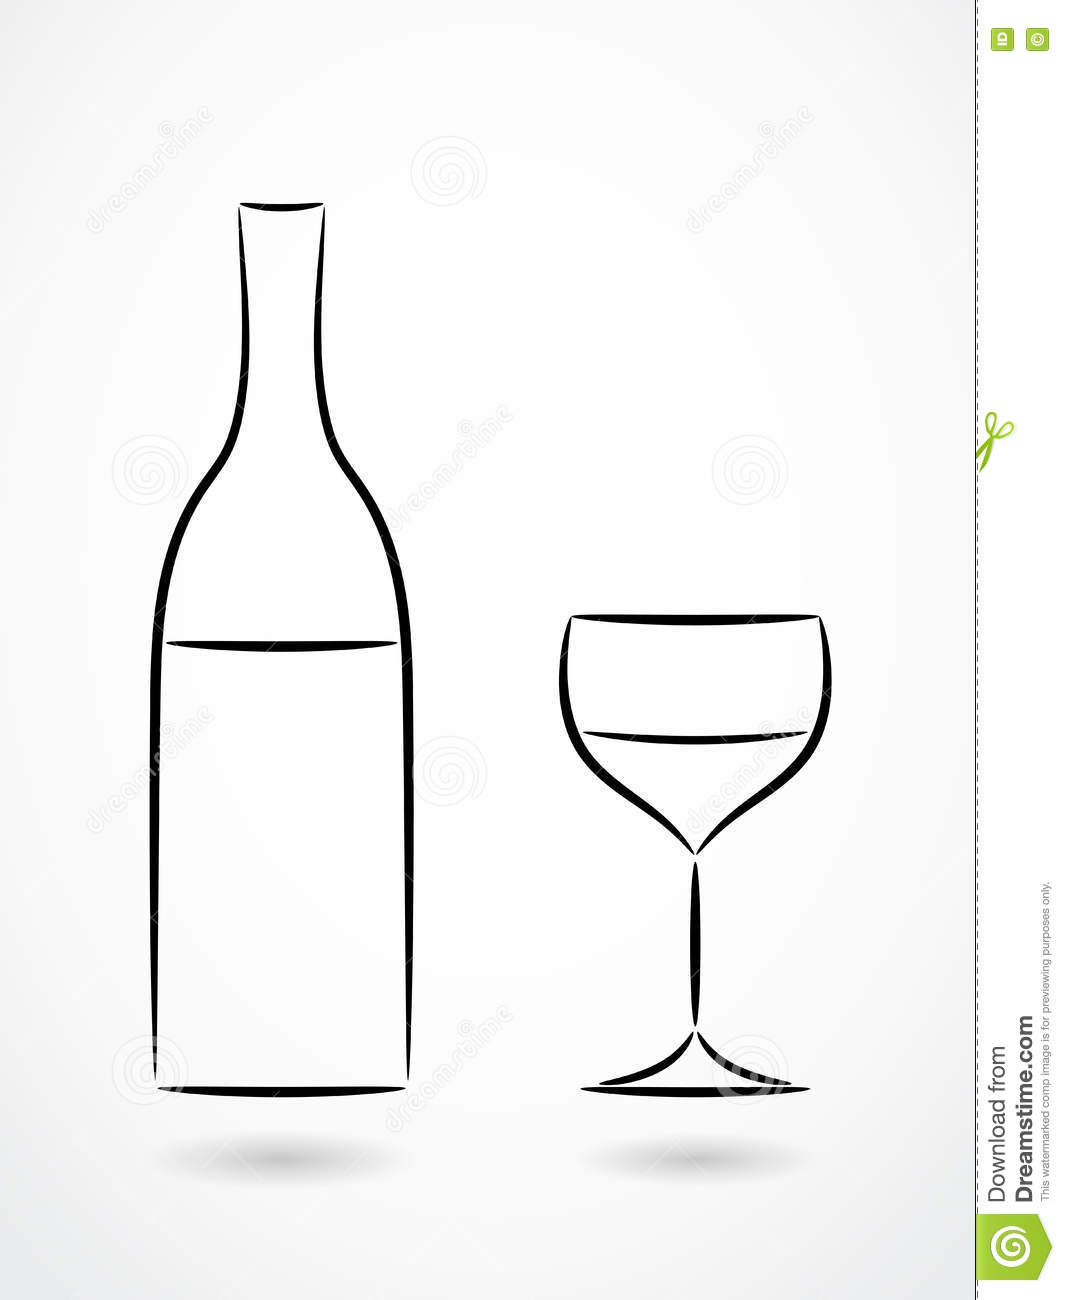 bouteille et verre du dessin de d coupe de vin illustration de vecteur image 78792458. Black Bedroom Furniture Sets. Home Design Ideas